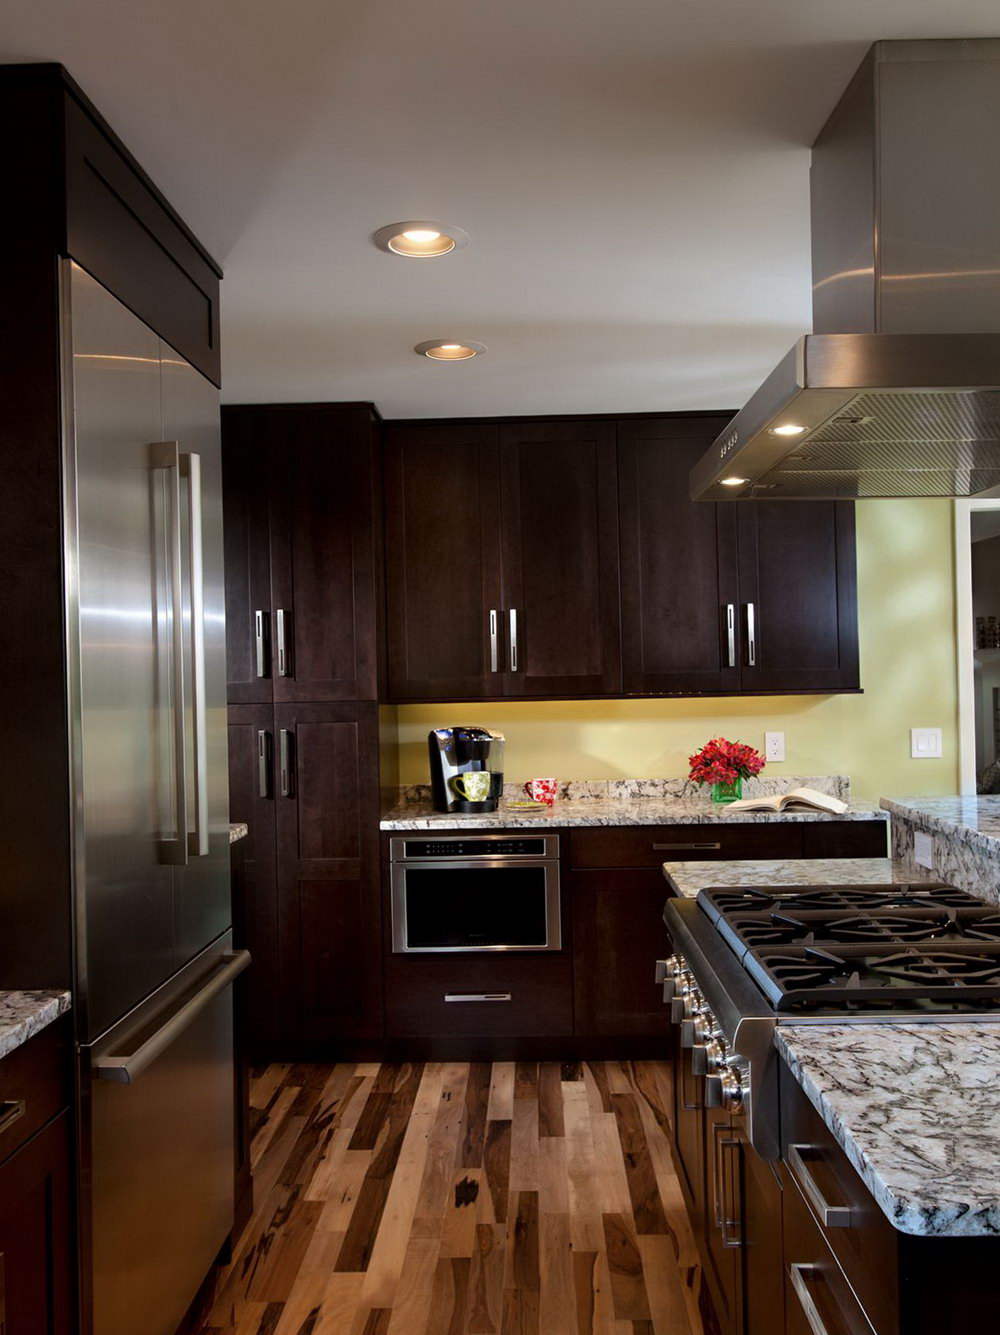 Kitchen Cabinets Matching Hardwood Floors